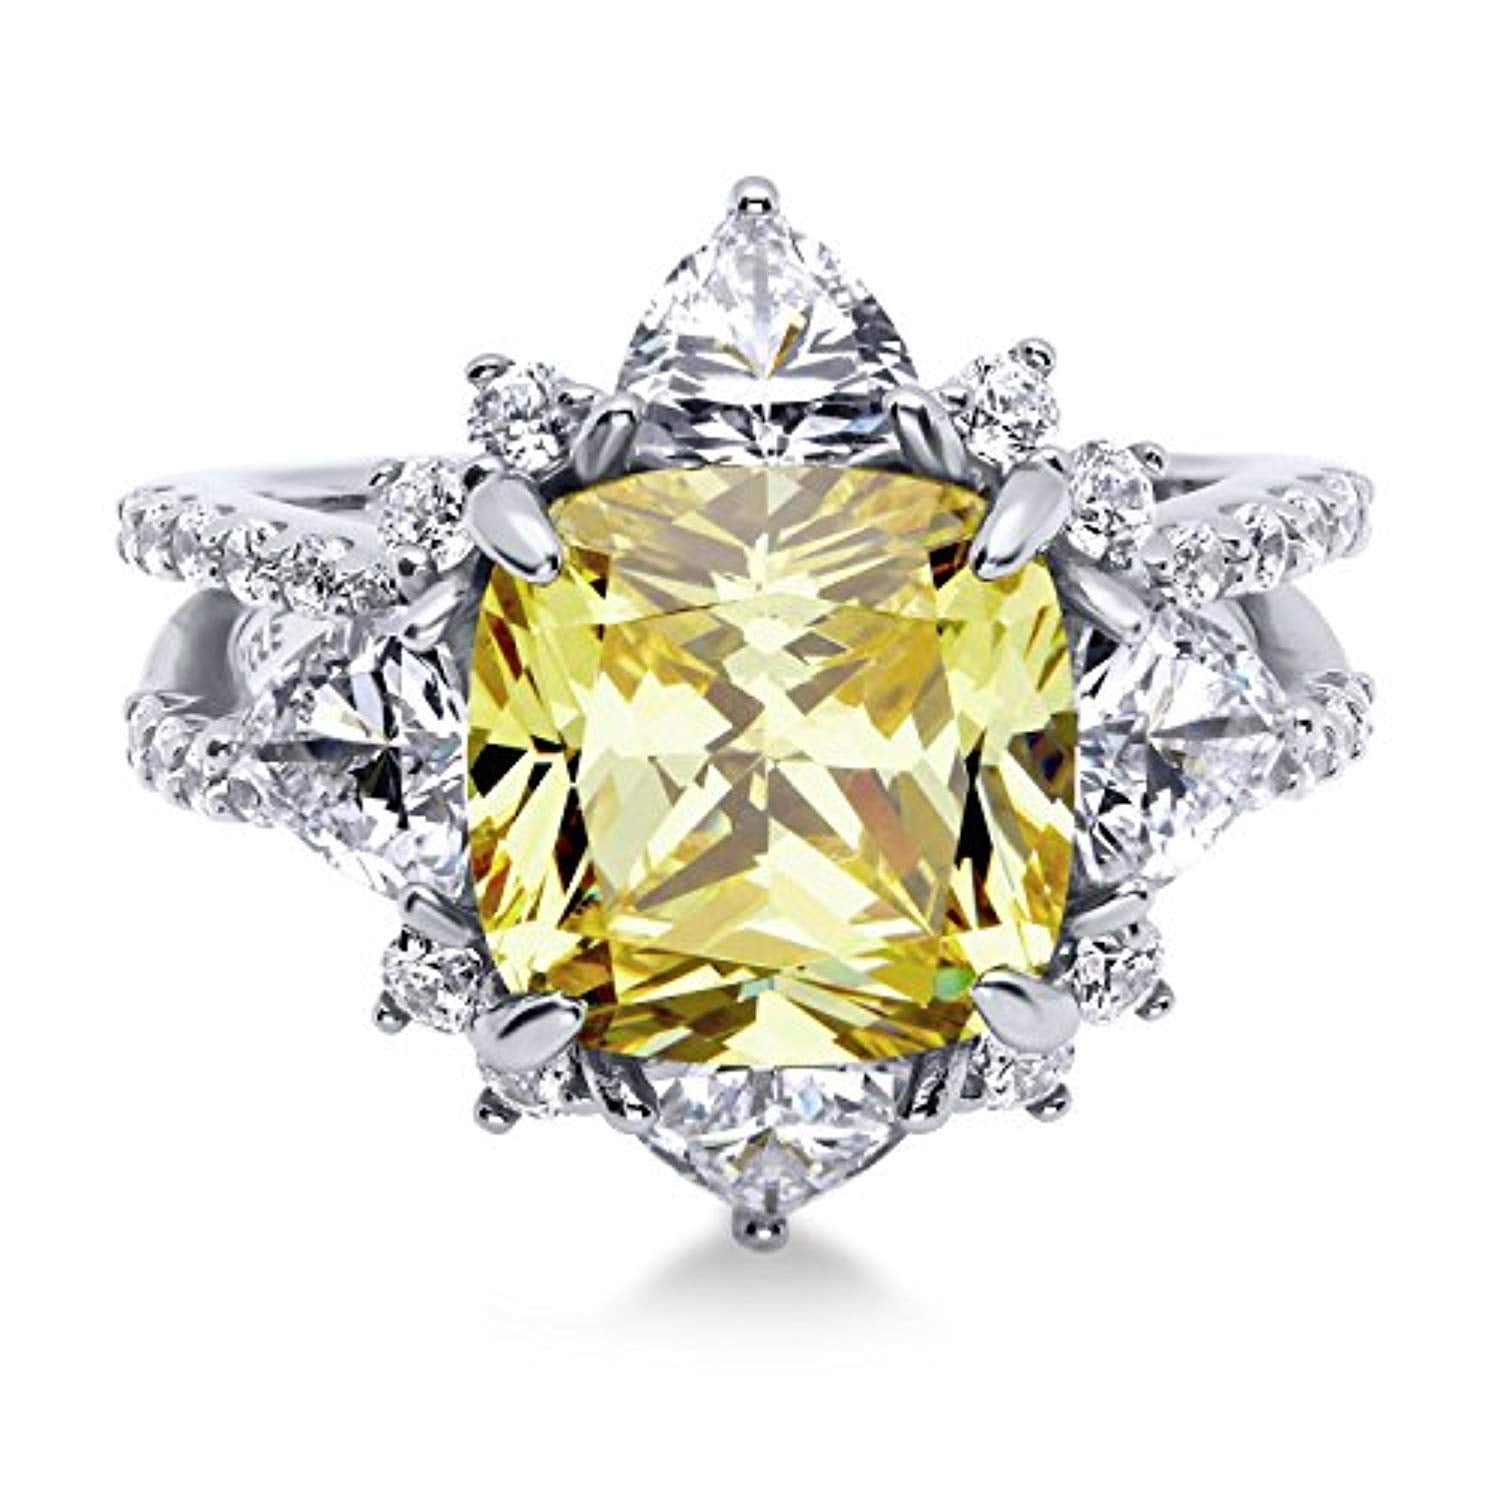 Rhodium Plated Sterling Silver Canary Yellow Cushion Cut Cubic Zirconia CZ Statement Halo Flower Cocktail Fashion Right Hand Split Shank Ring